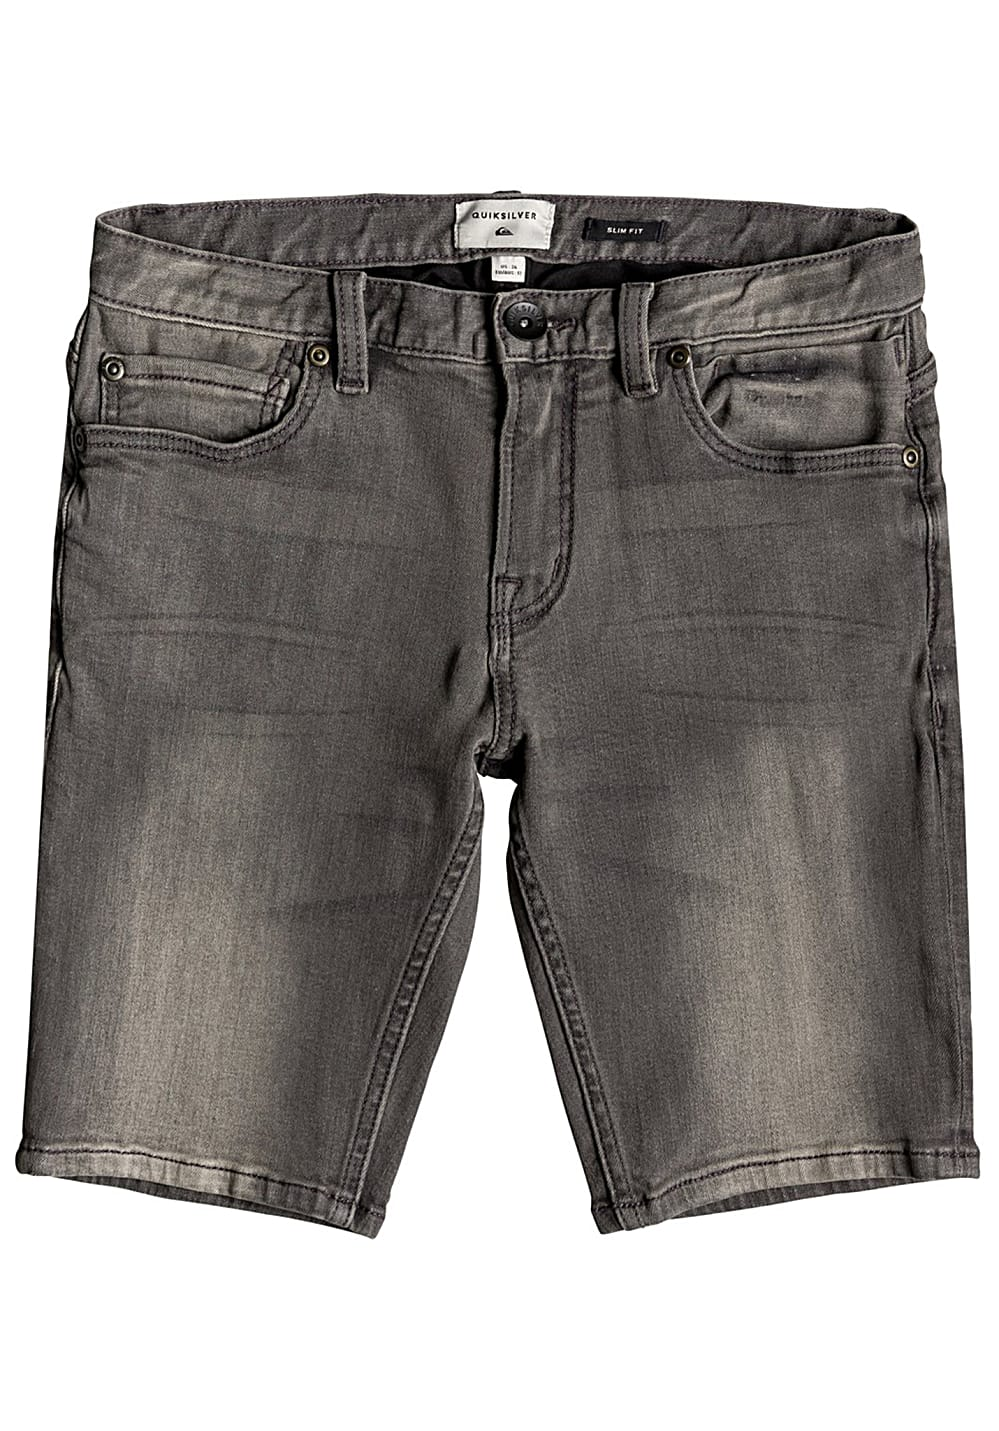 Boyshosen - Quiksilver Distorsion Shorts für Jungs Grau - Onlineshop Planet Sports